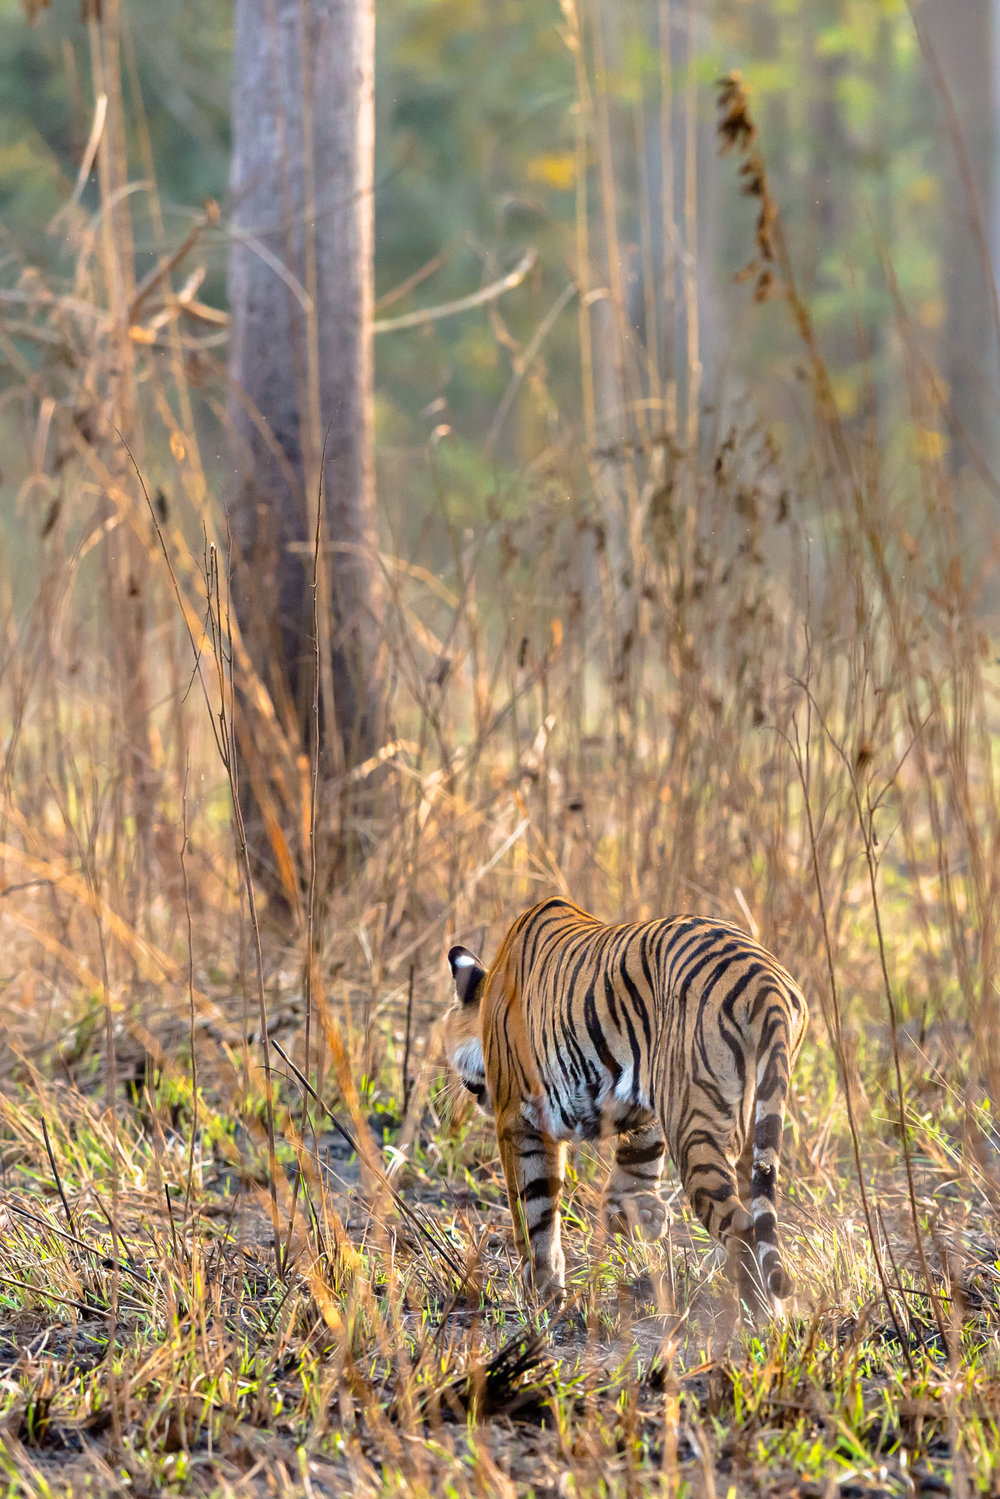 Female Tiger at Dudhwa national Park